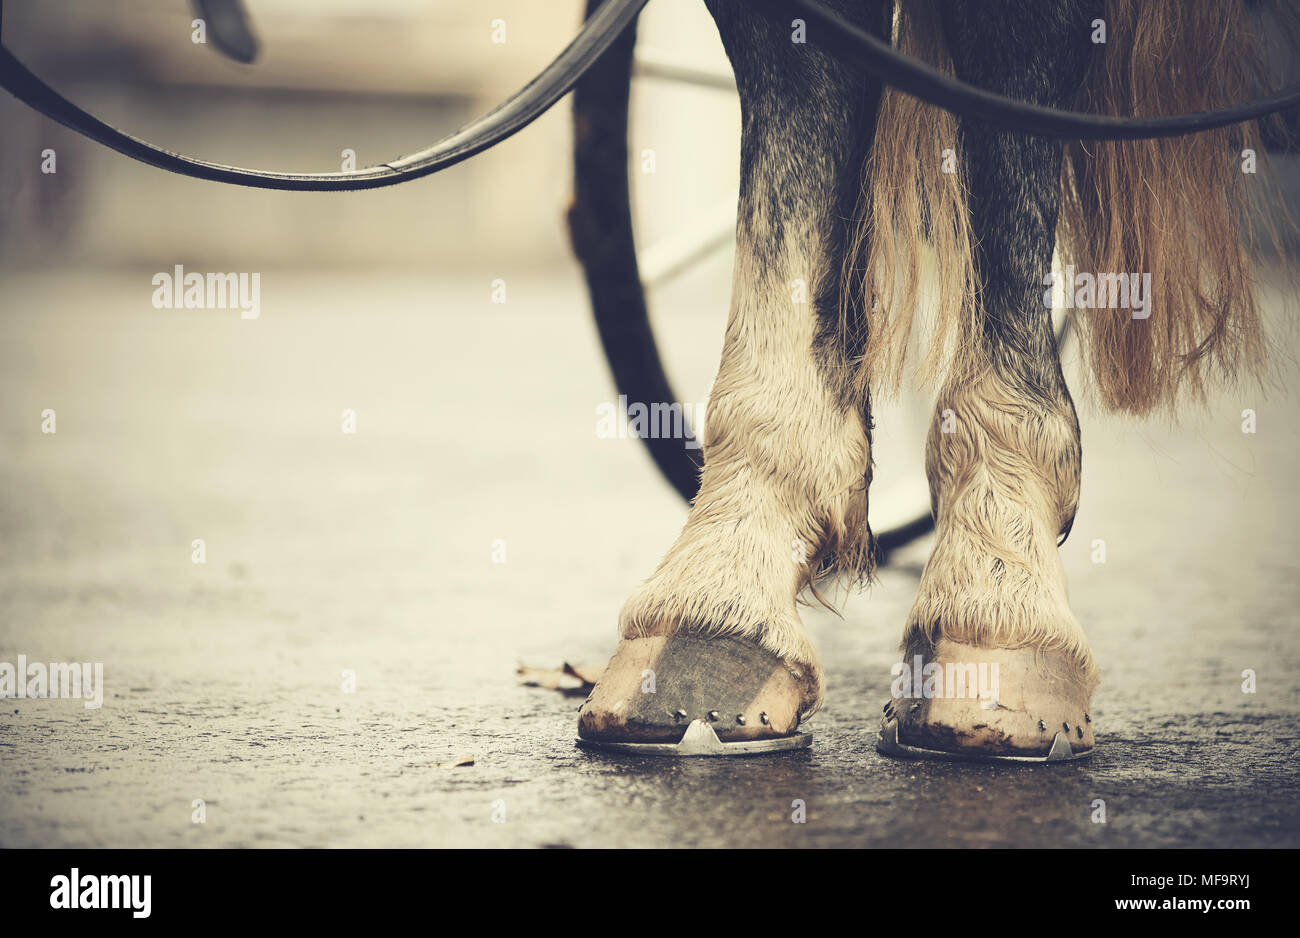 Horse-drawn transport. Hind legs of the horse harnessed in the carriage. - Stock Image